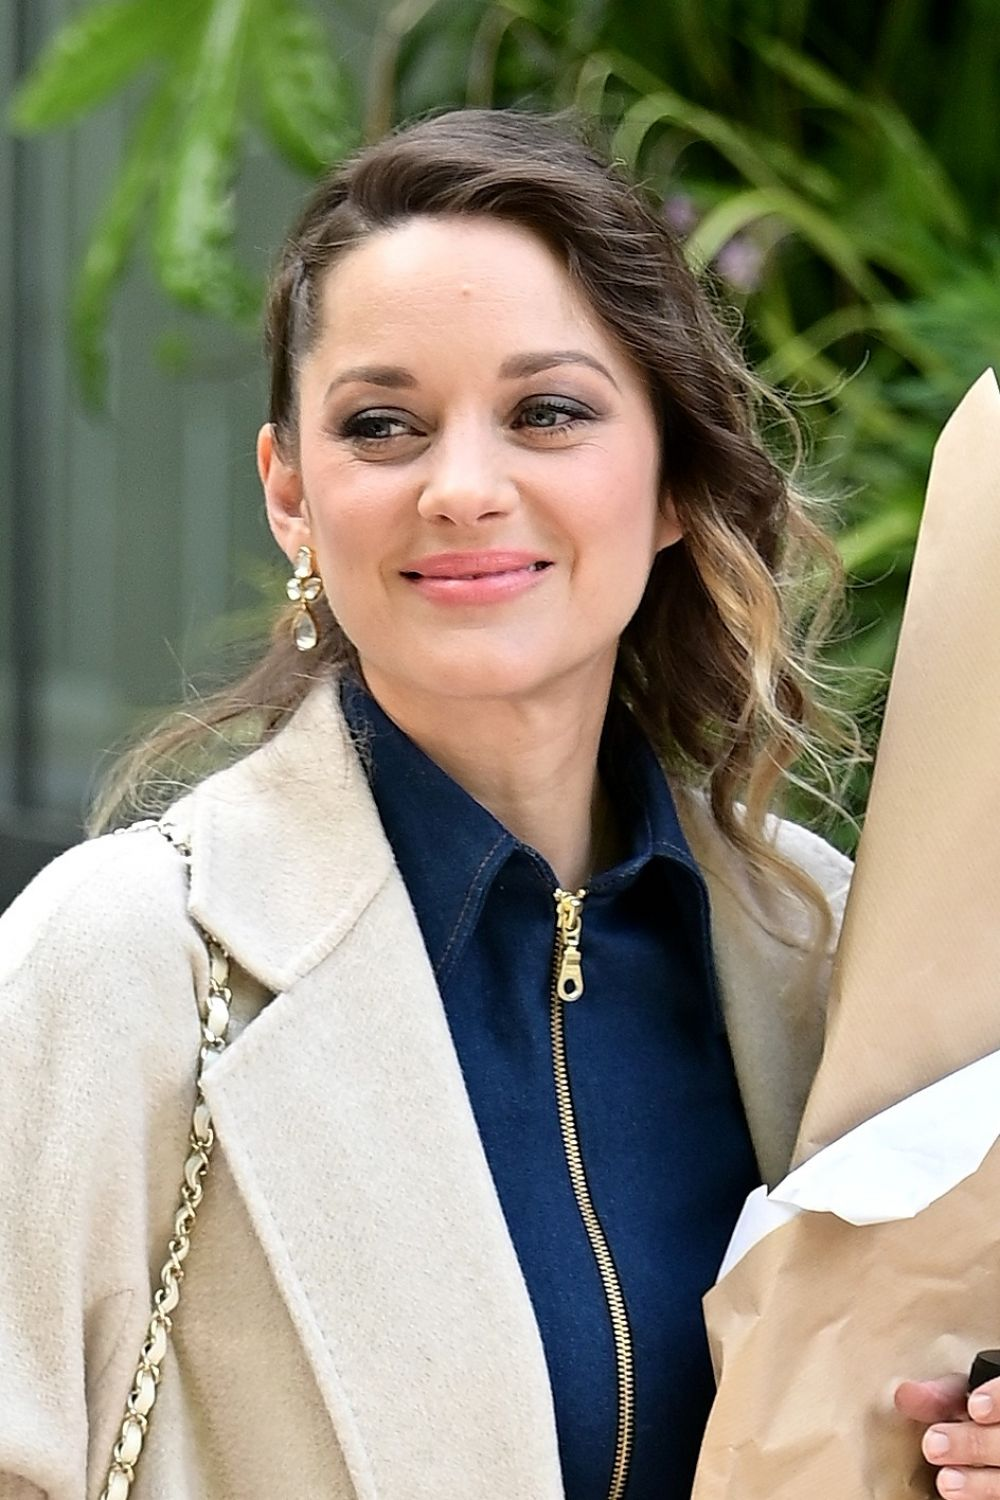 MARION COTILLARD Out and About in Paris 04/29/2019 ...